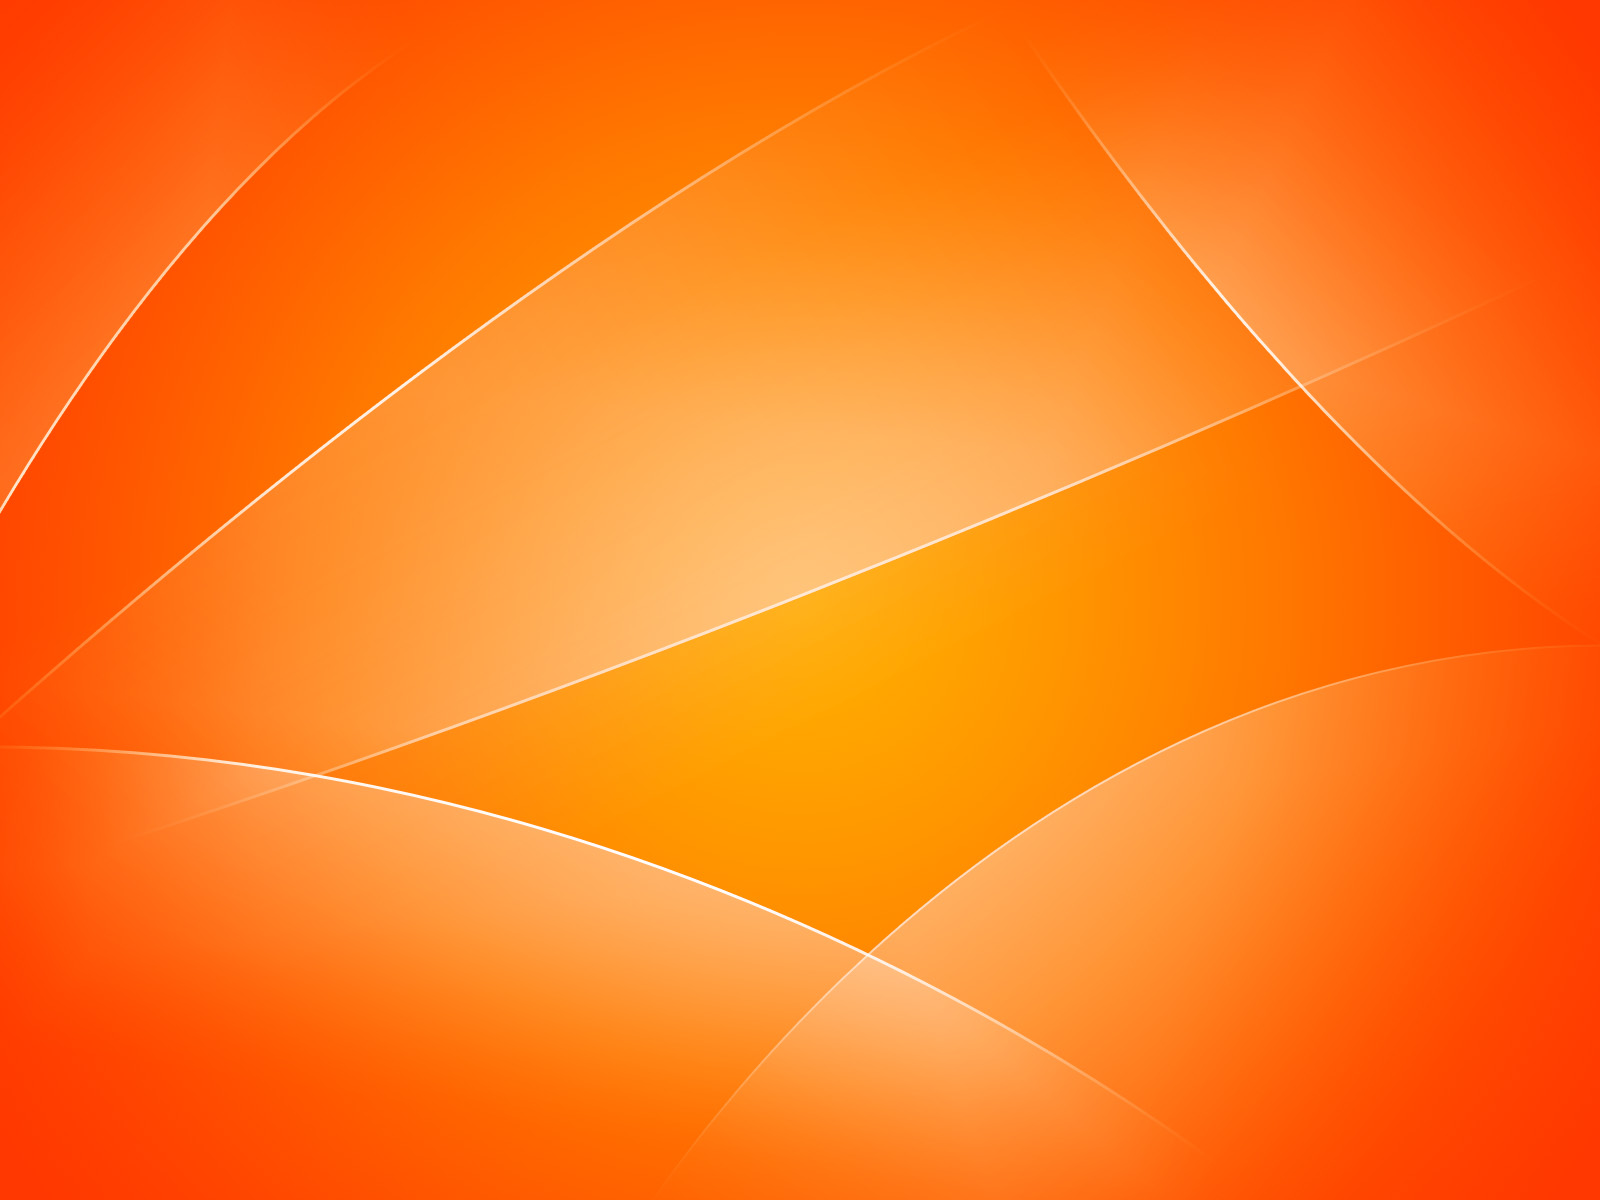 http://4.bp.blogspot.com/-VbwG8YshEFA/TlczT0sYU1I/AAAAAAAAEYs/b0XUa7jJYok/s1600/Orange_abstract_wallpaper.jpg